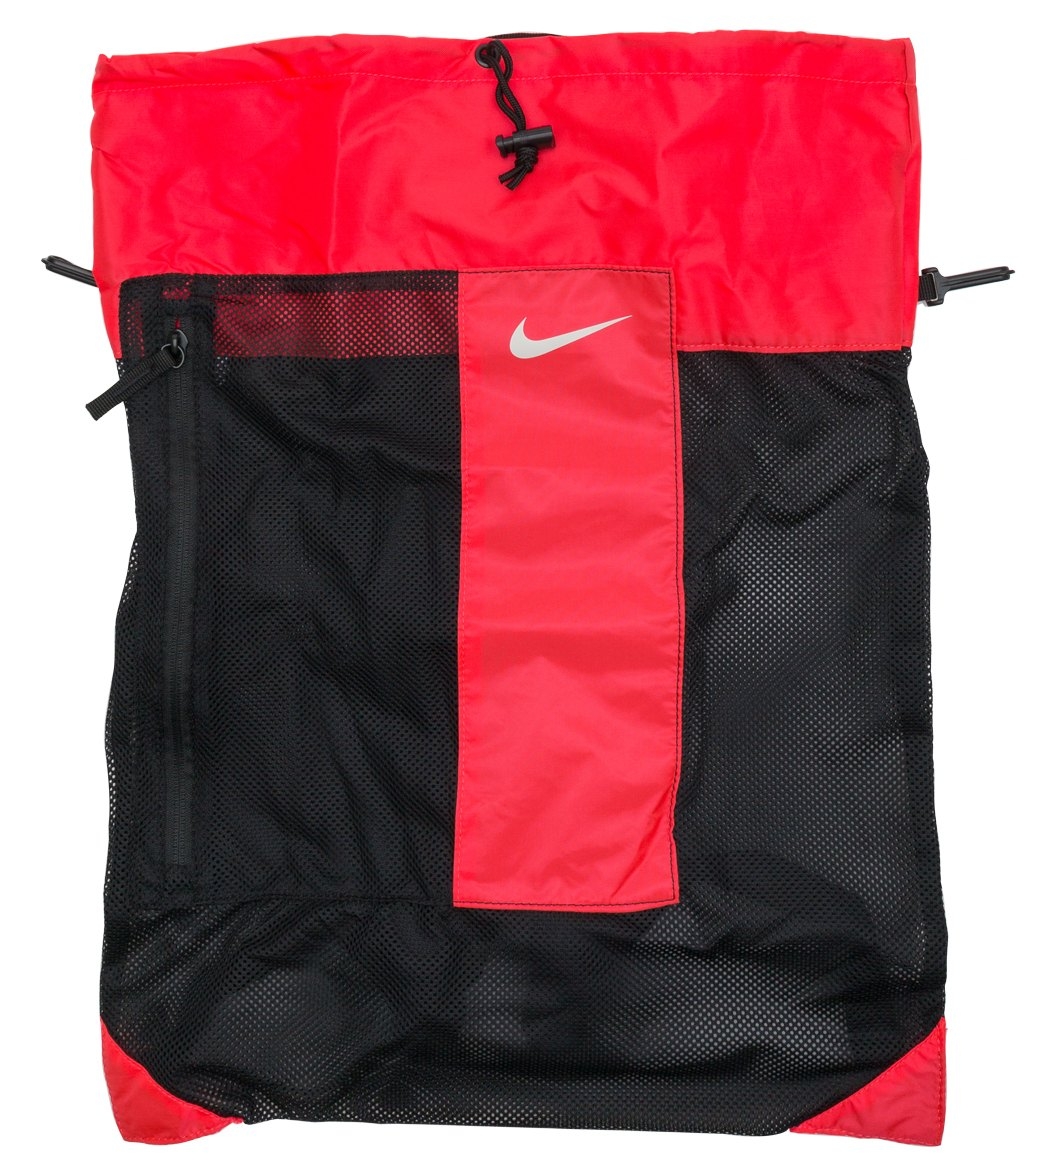 Nike Deck Bag at SwimOutlet.com aa34017e53b54